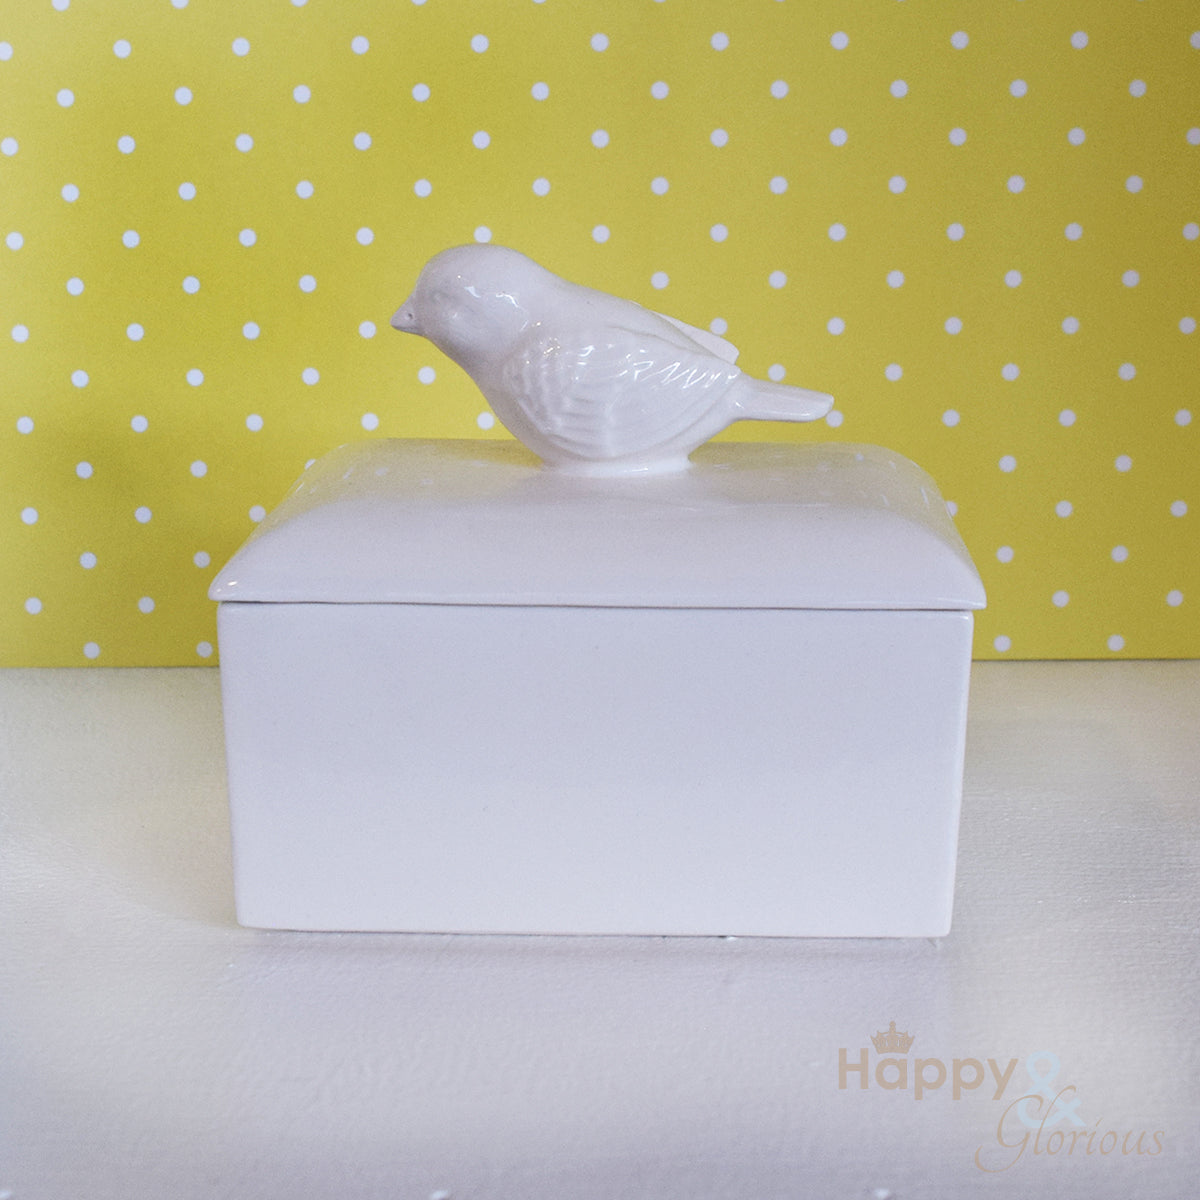 Ceramic bird butter dish by Katie Brinsley